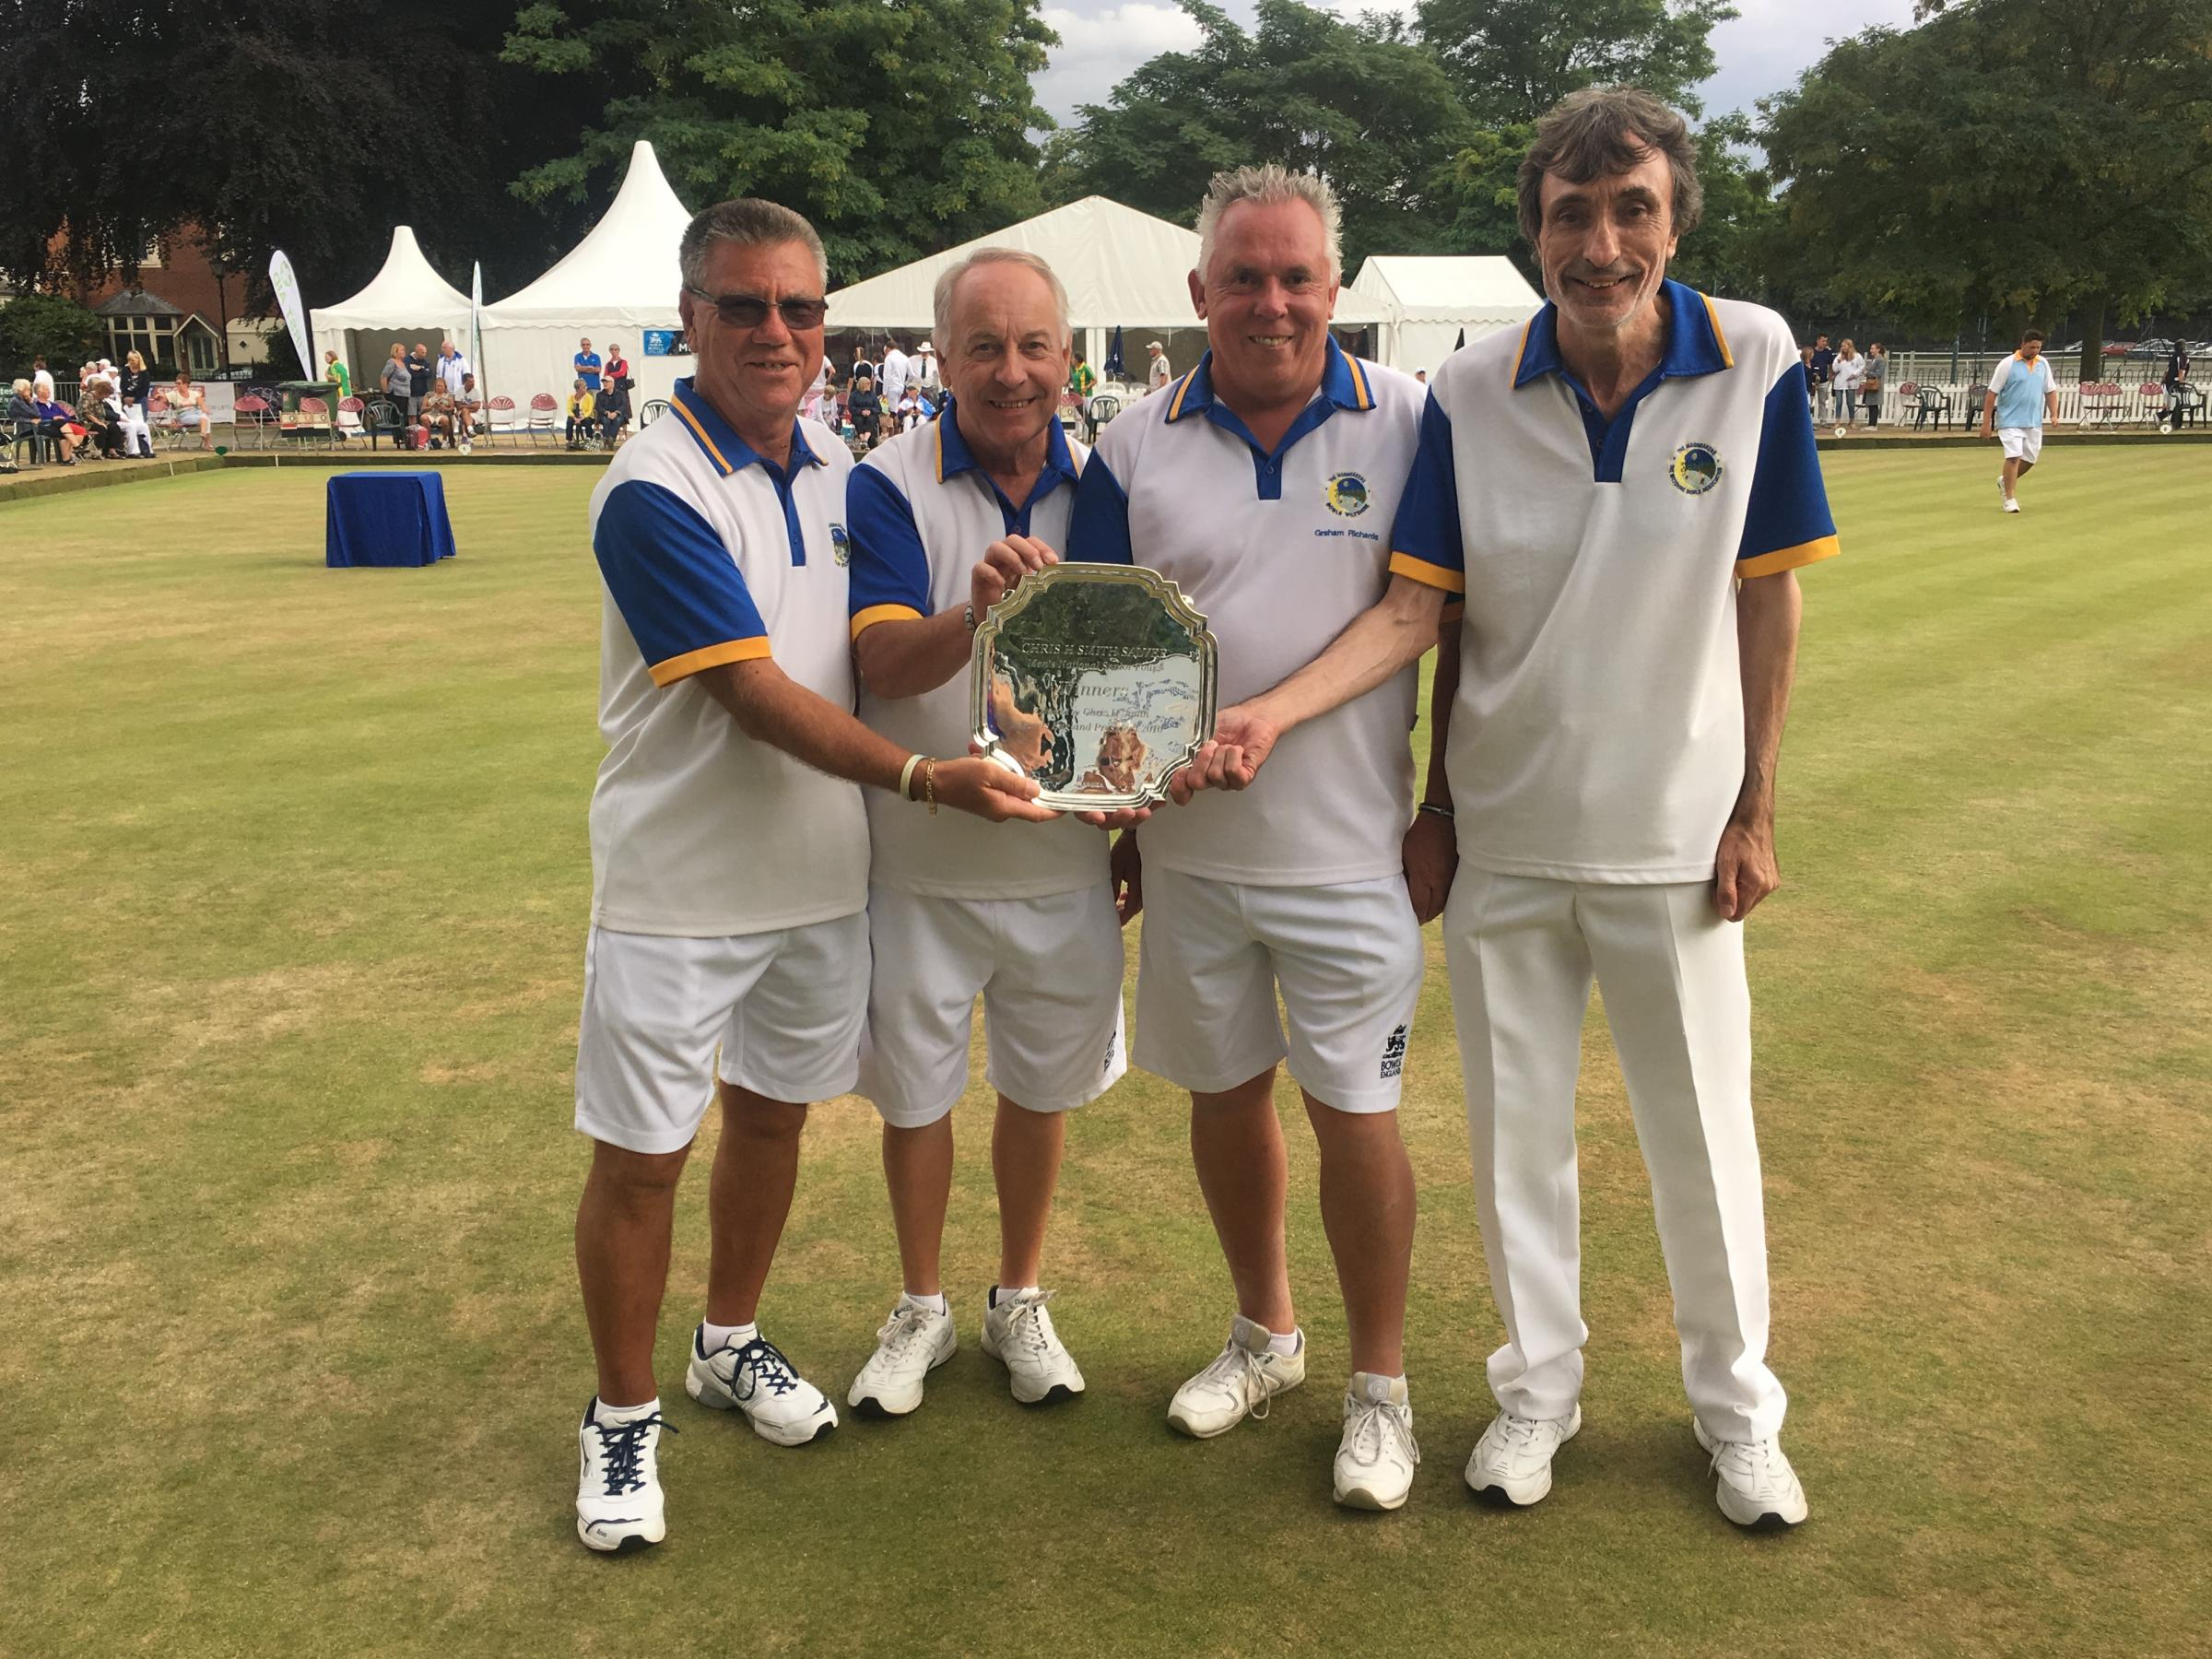 Royal Wootton Bassett's triumphant men's senior fours team (l-r): Dave Snell, Alan Small, Graham Richards and Kevin Embling